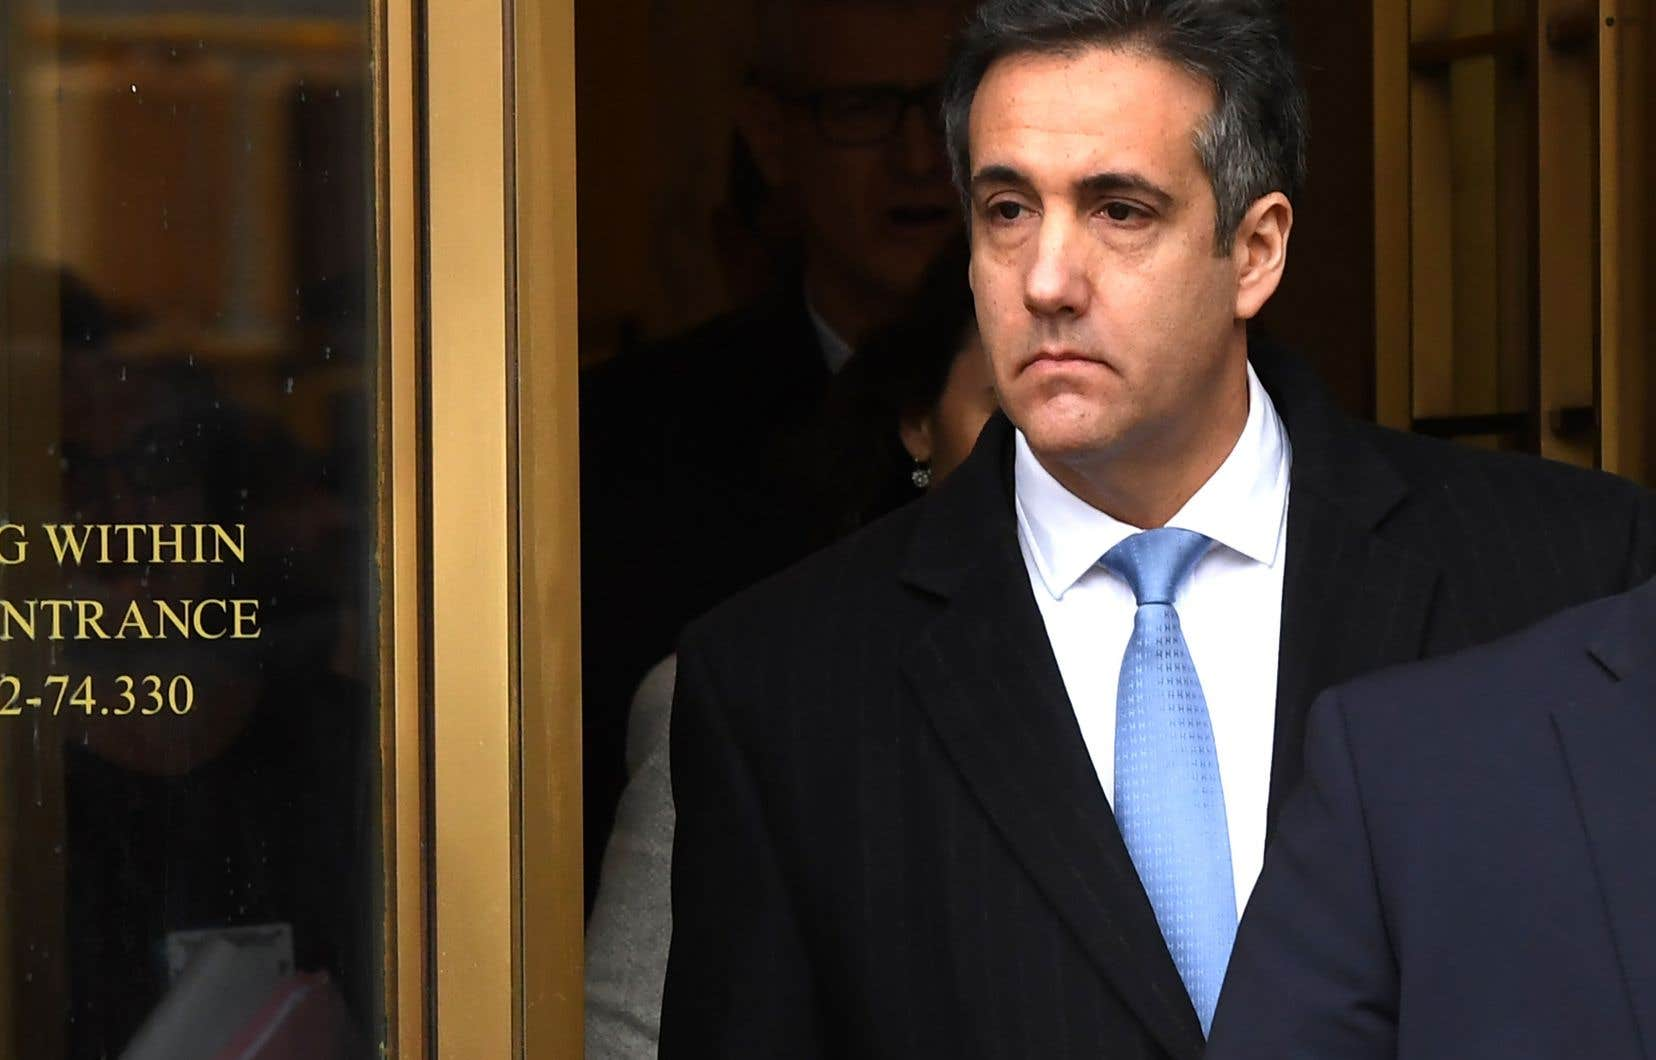 L'ex-avocat personnel de Donald Trump, Michael Cohen